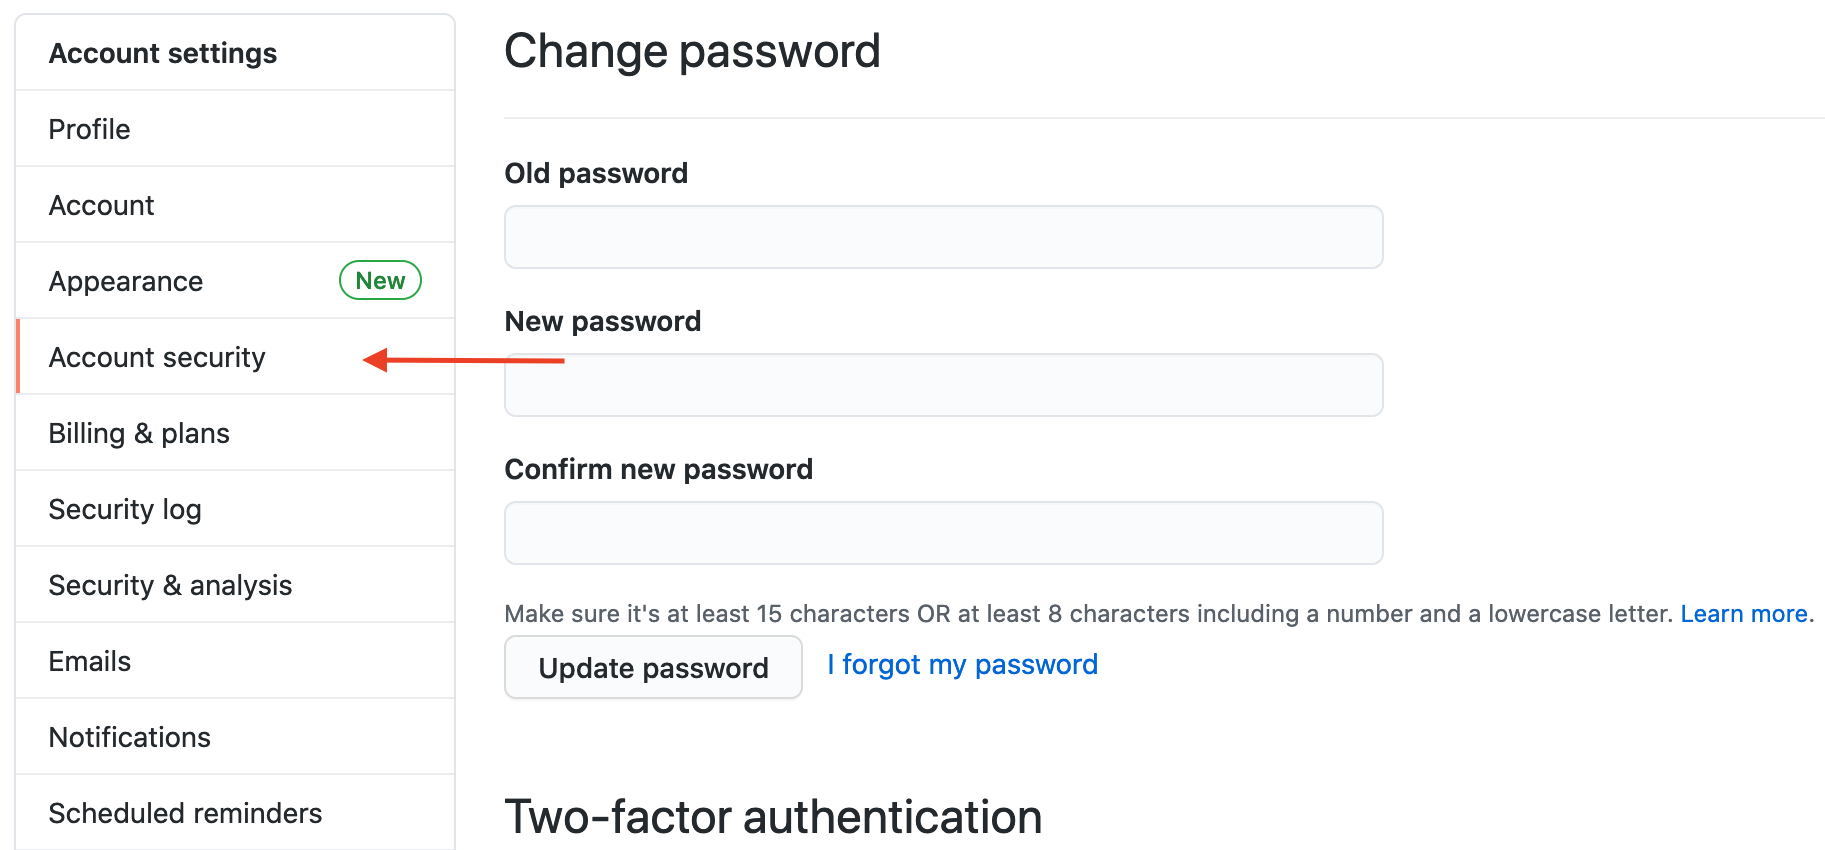 account security tab